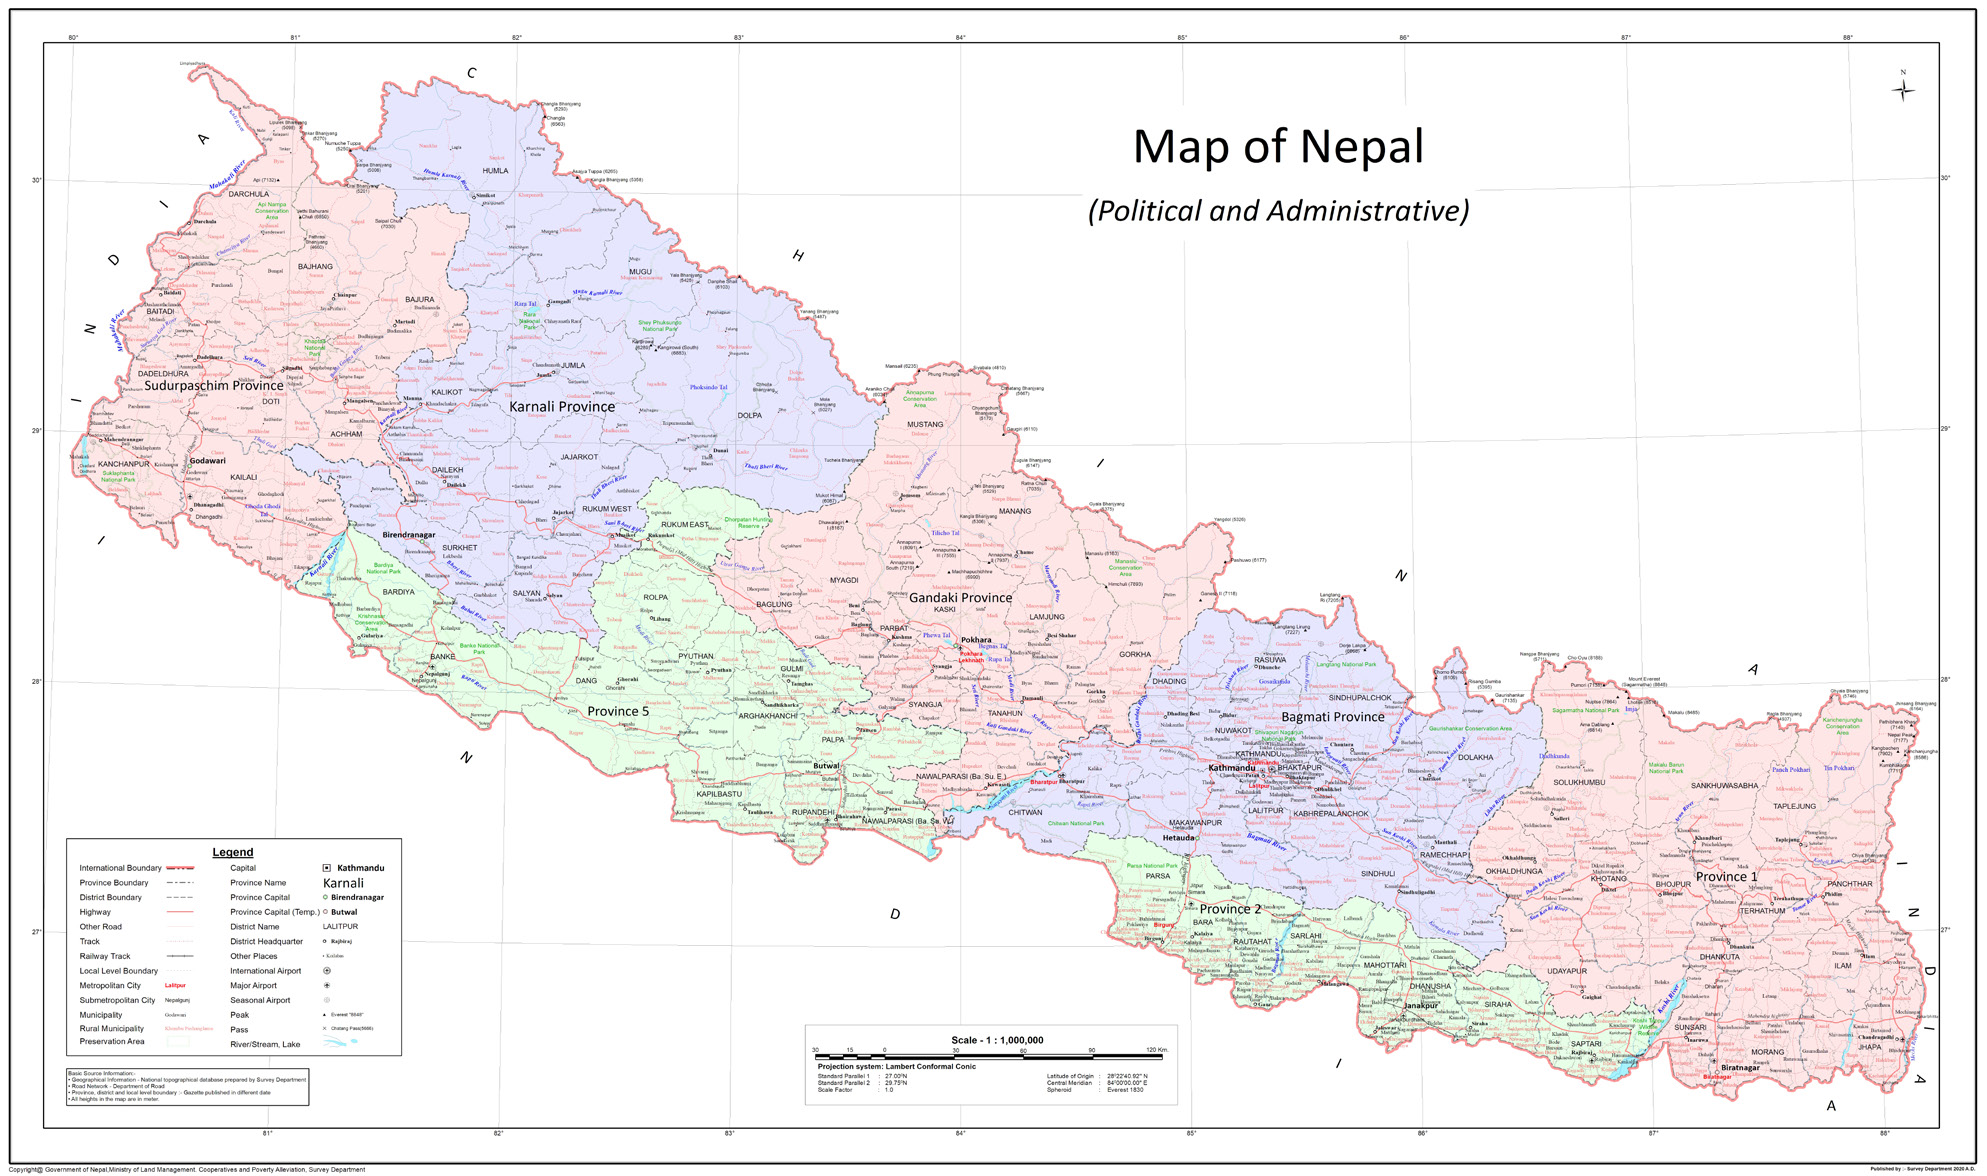 The evolution of Kalapani border dispute between Nepal and India